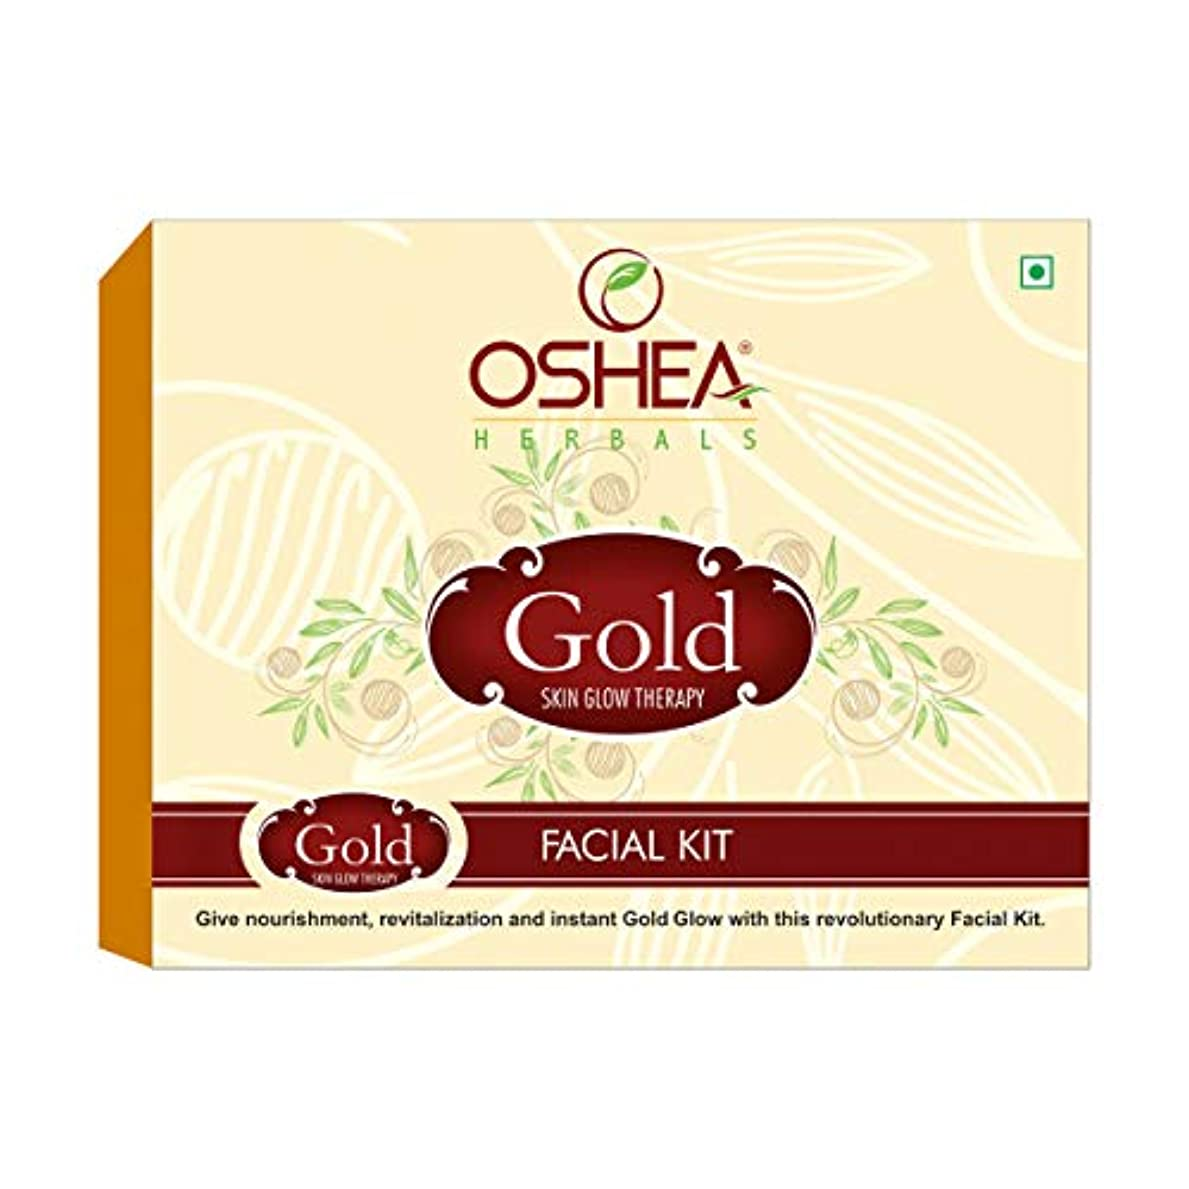 苦一般的なむさぼり食うOshea Herbals Gold Facial Kit 42g for softer and smoother skin and enhance your complexion Oshea Herbals ゴールド...